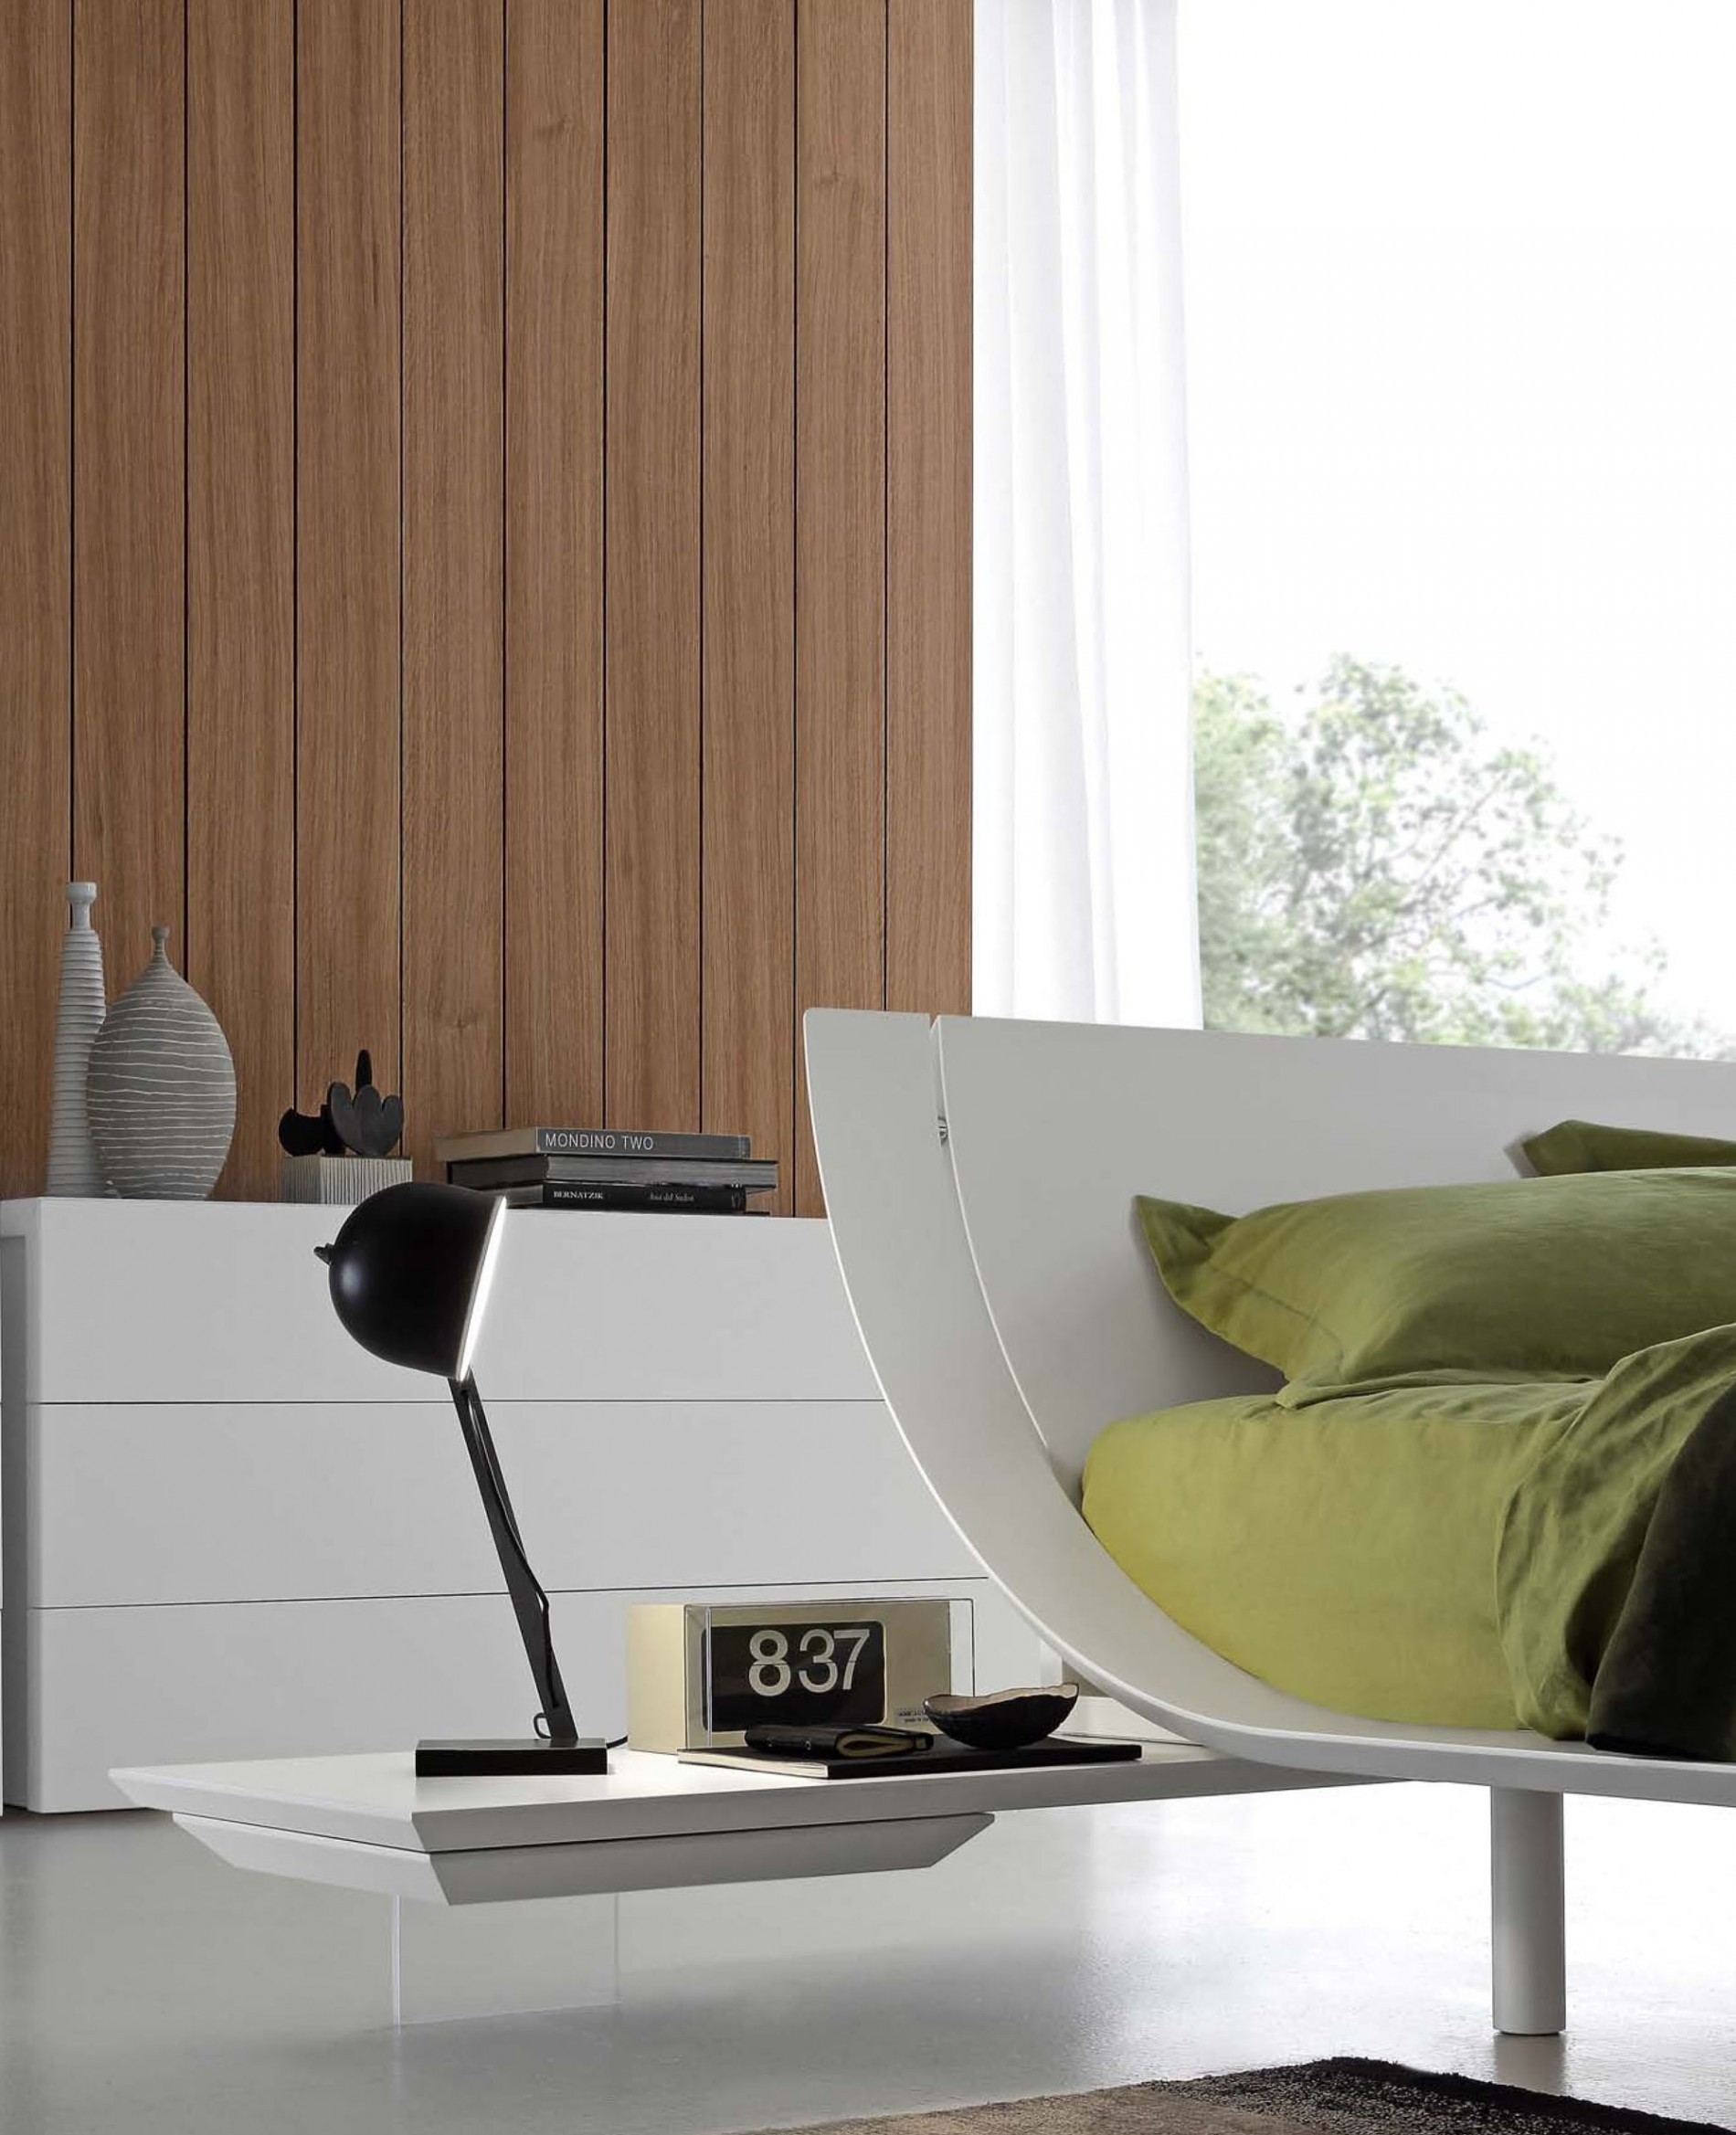 Presotto Camere Da Letto. Interesting Presotto Camere Da Letto With ...